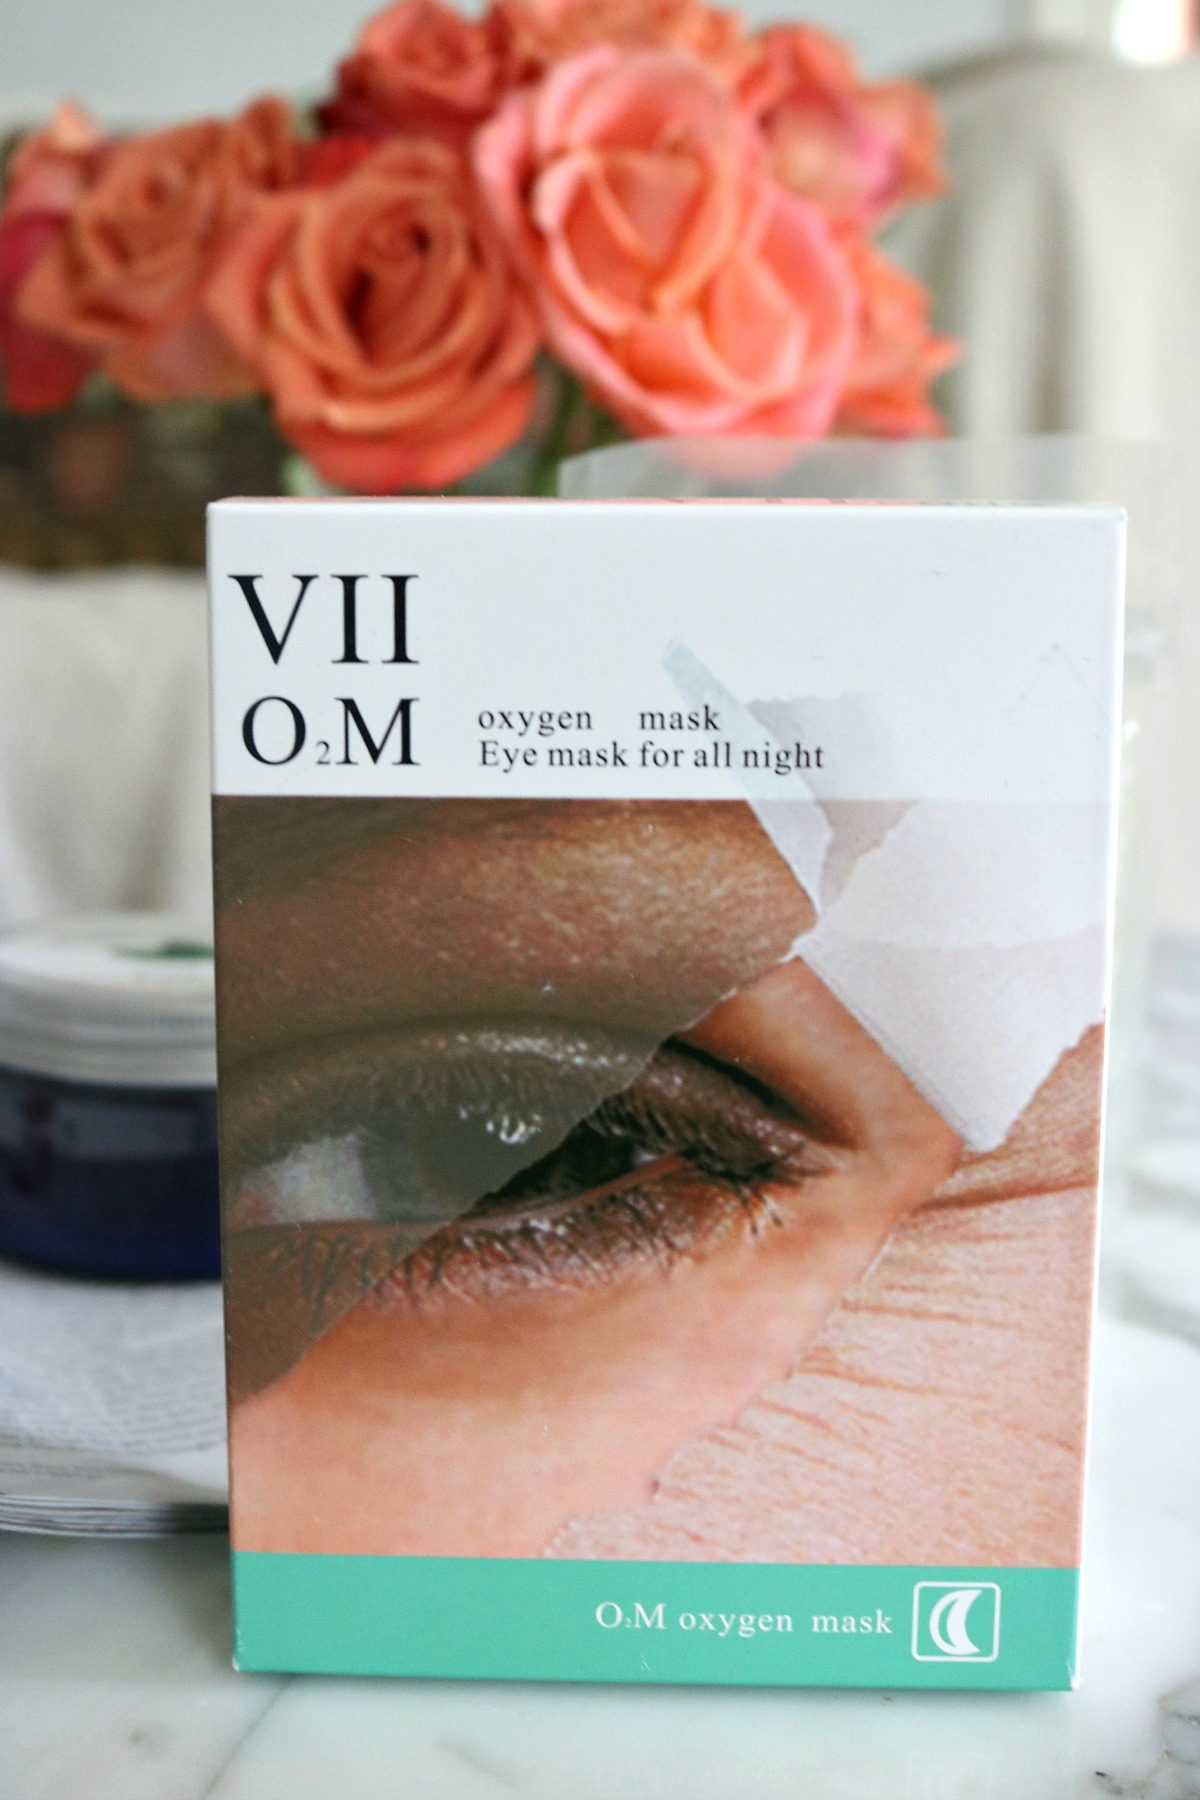 VIIcode Eye Masks help you beautify your eyes overnight. #Skincare #VIIcode